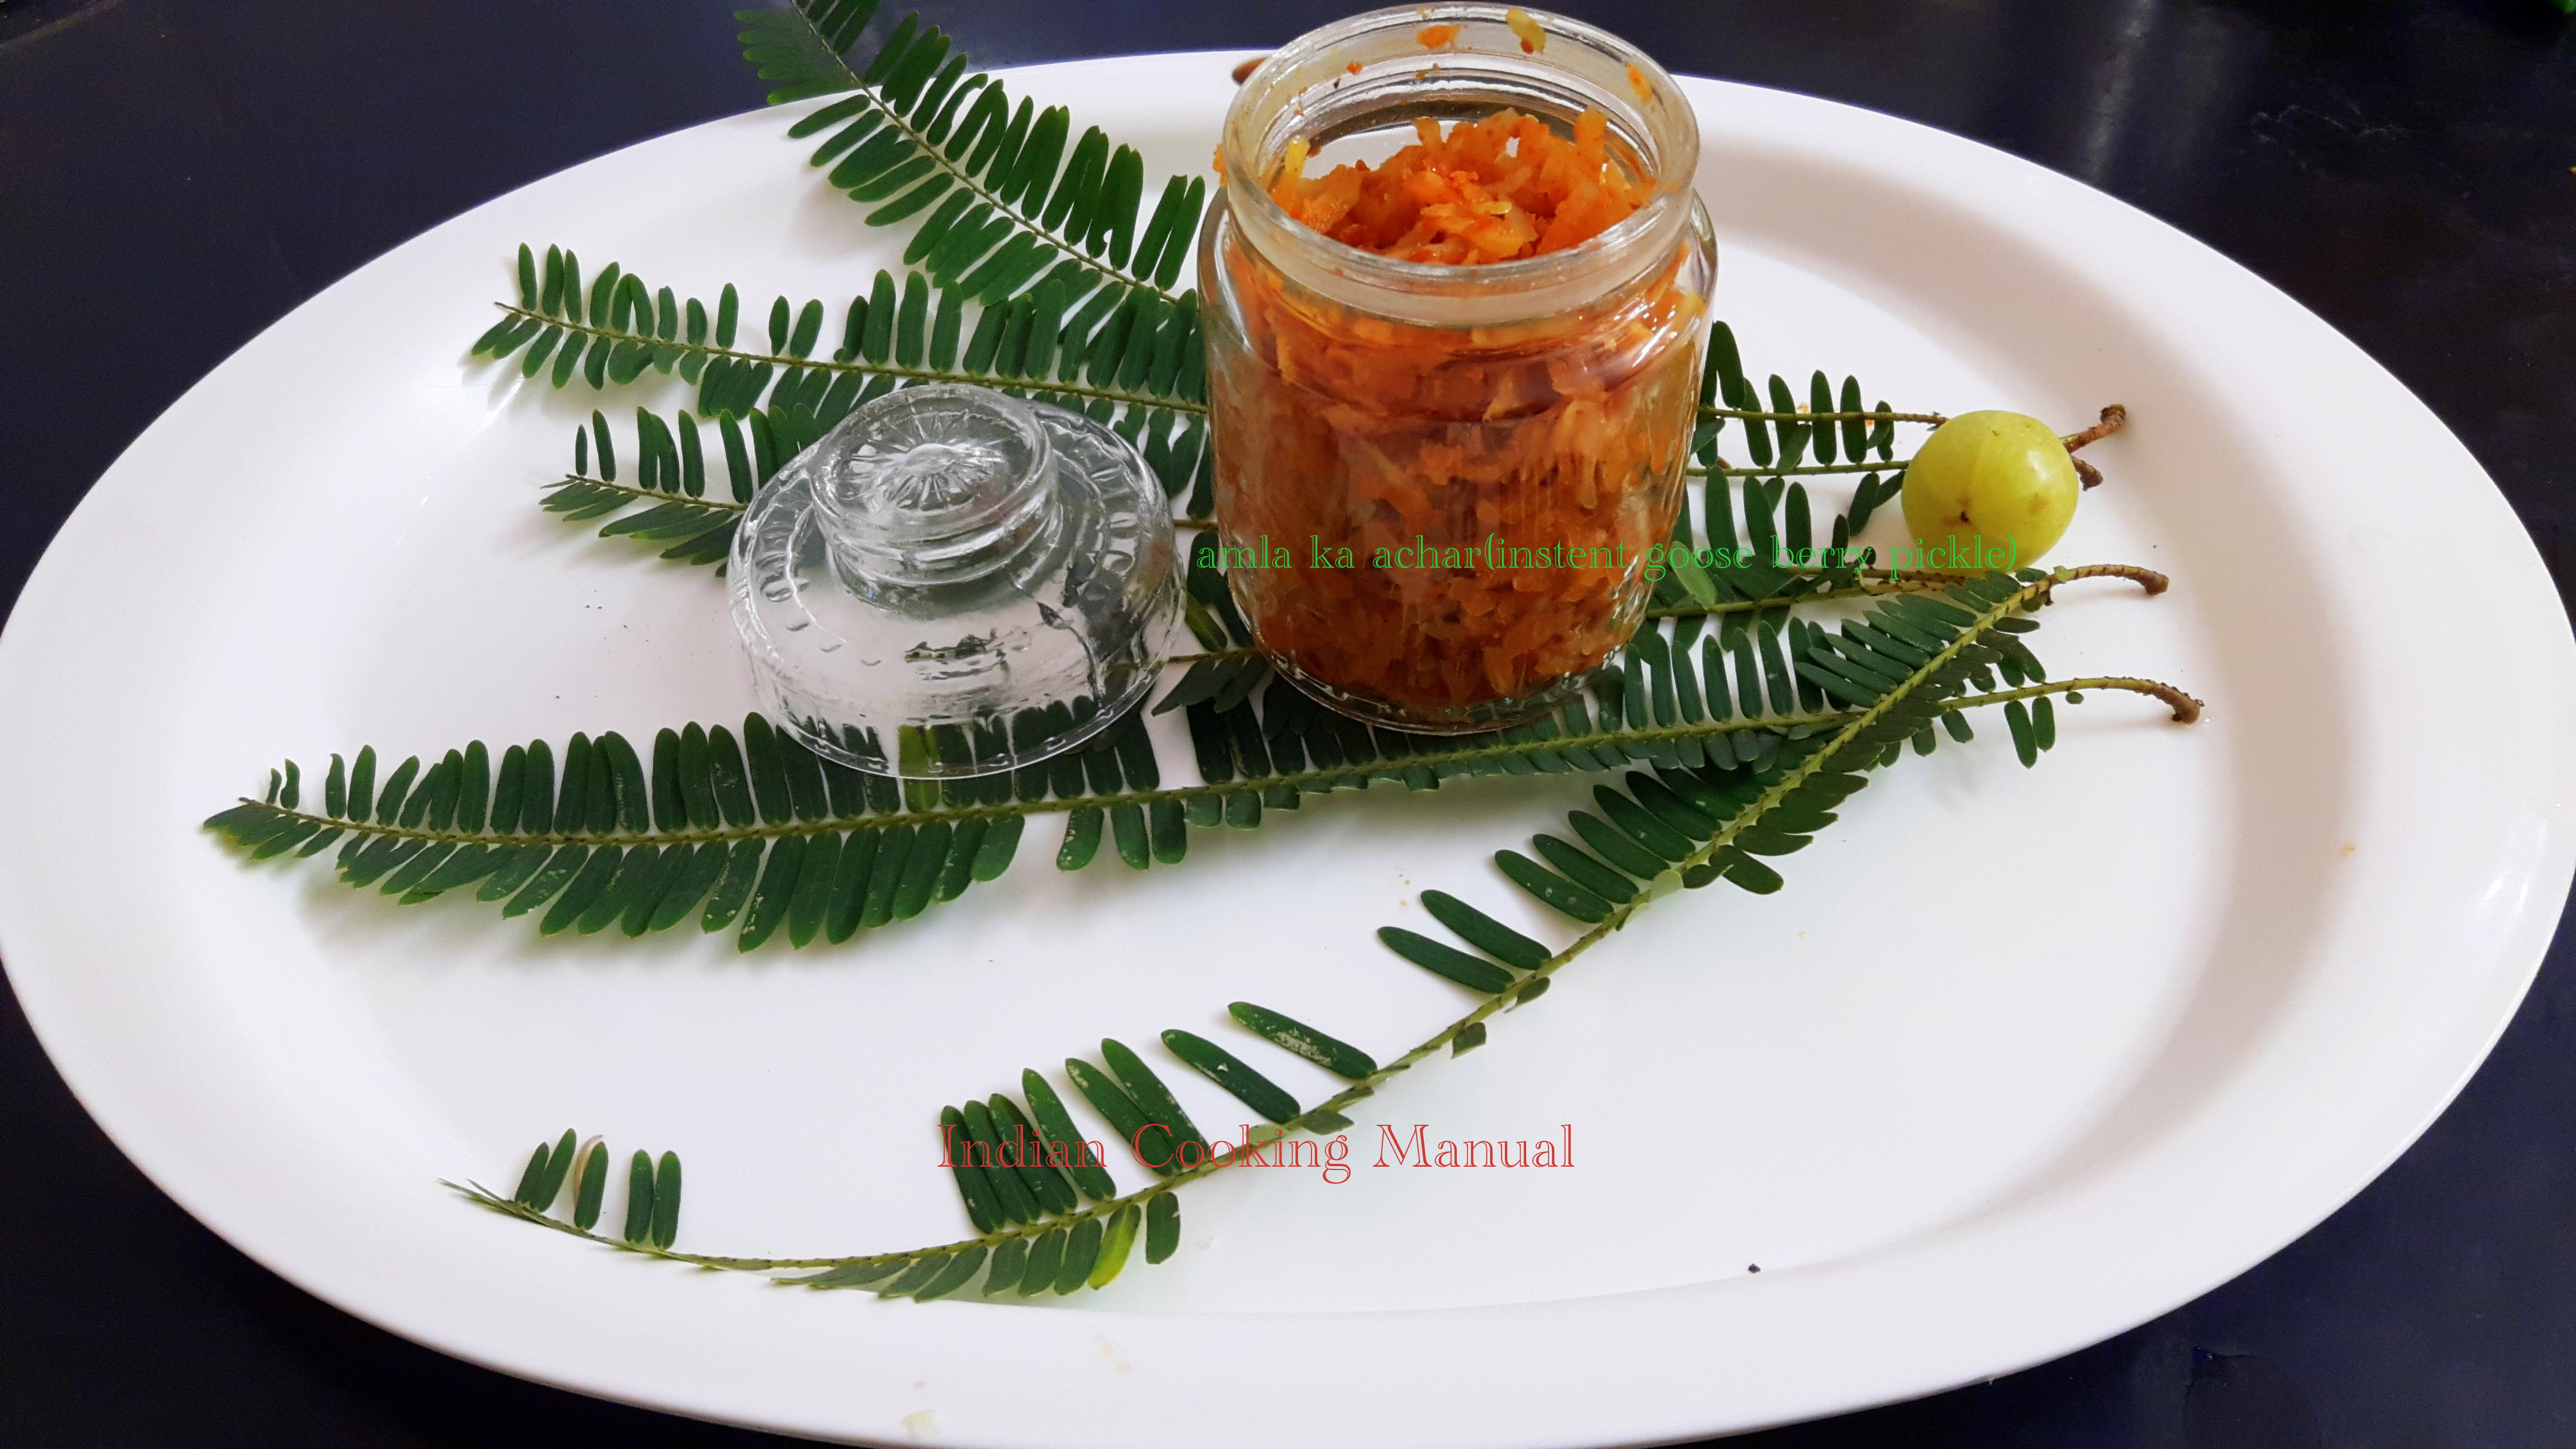 Amla ka achar (Instant goose berry pickle)